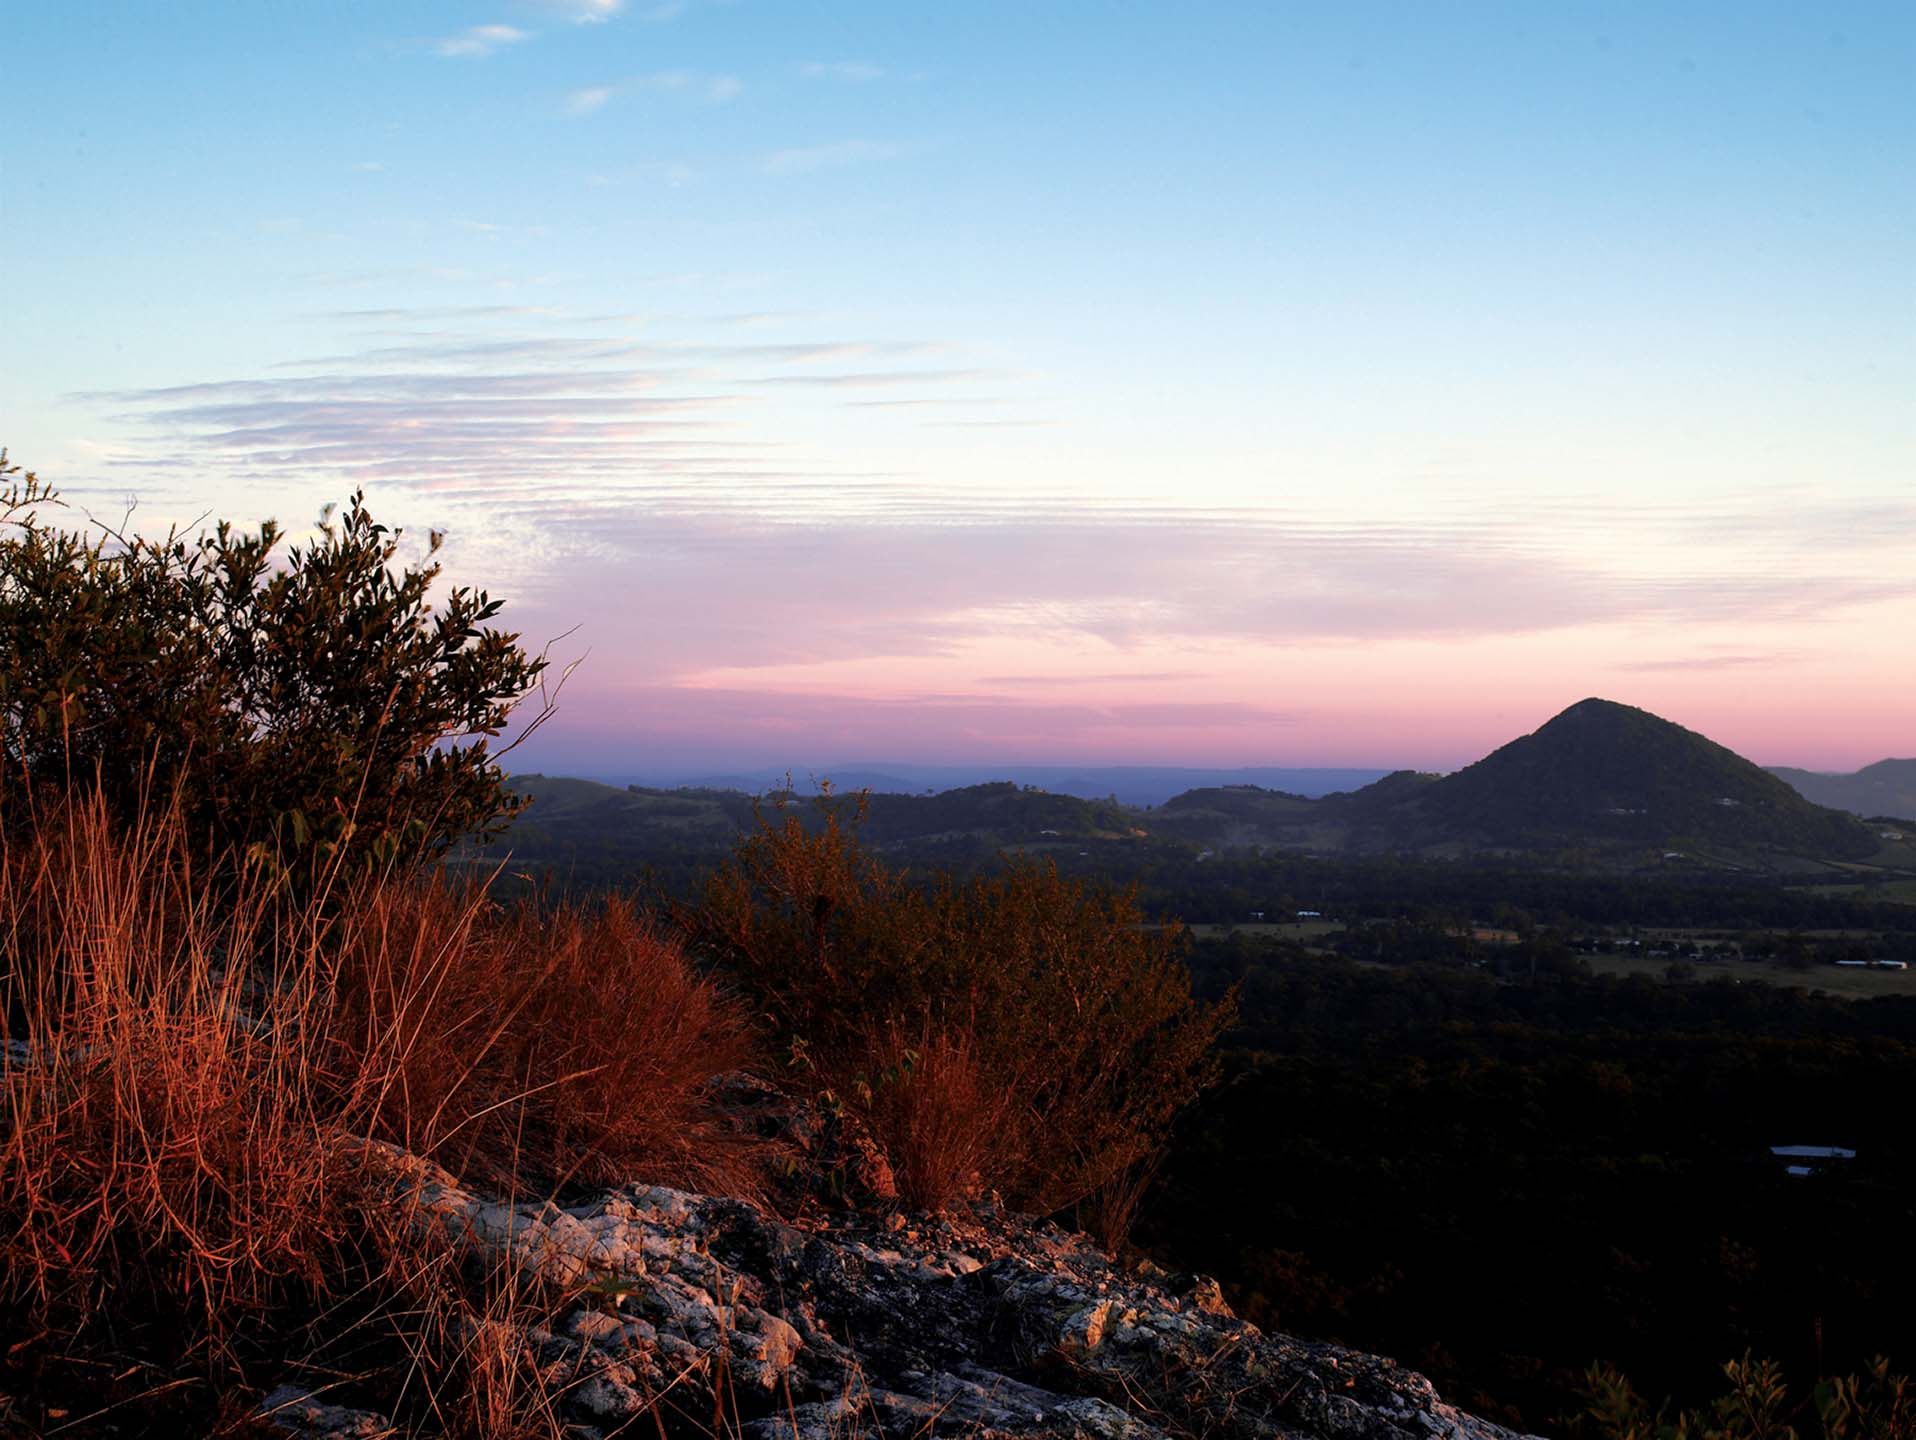 view of mount tinbeerwah with a colourful sky at sunset